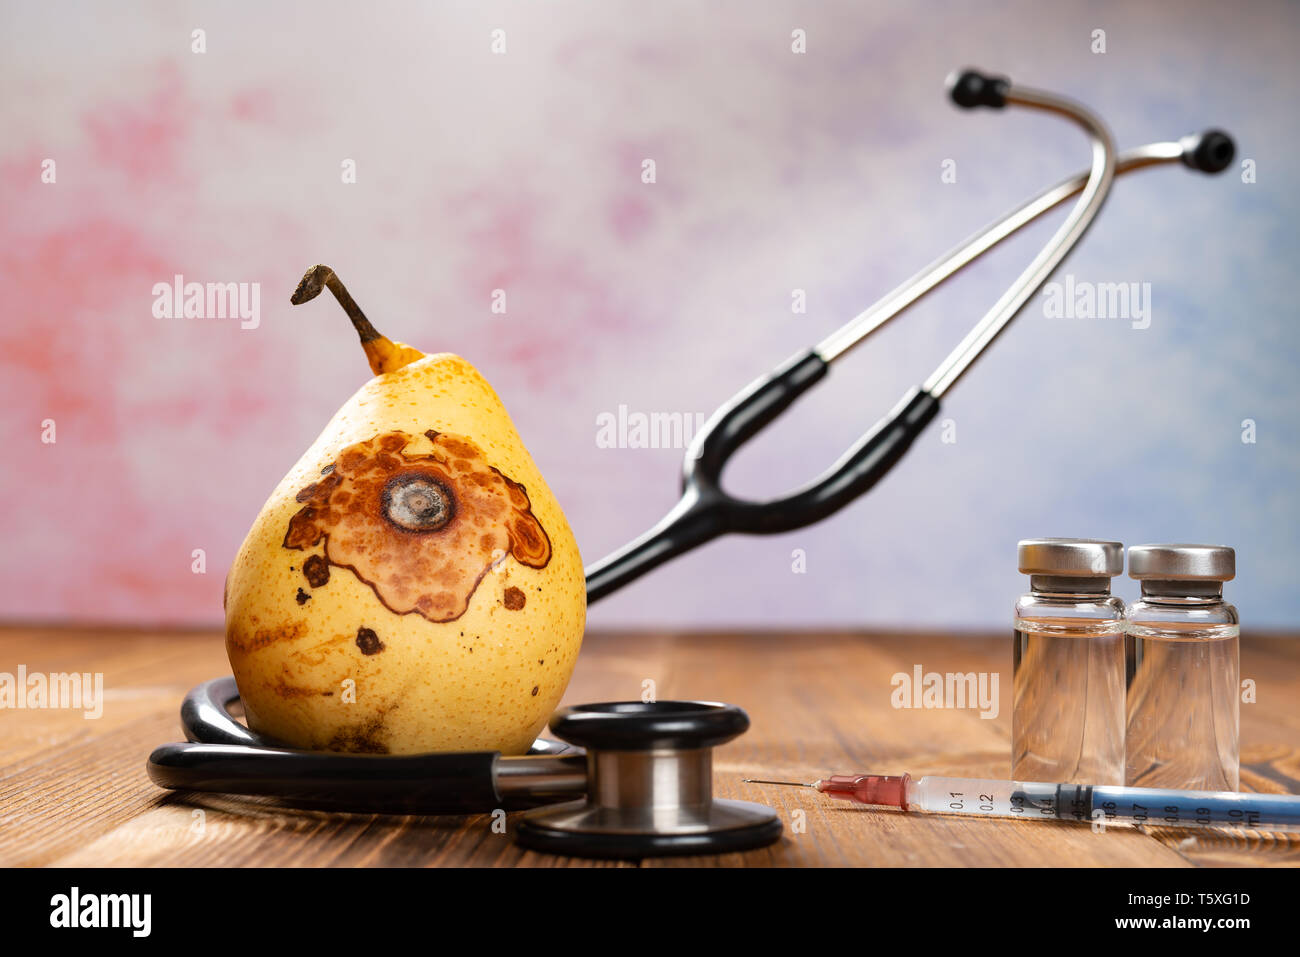 rotten pear surrounded by stethoscope - Stock Image